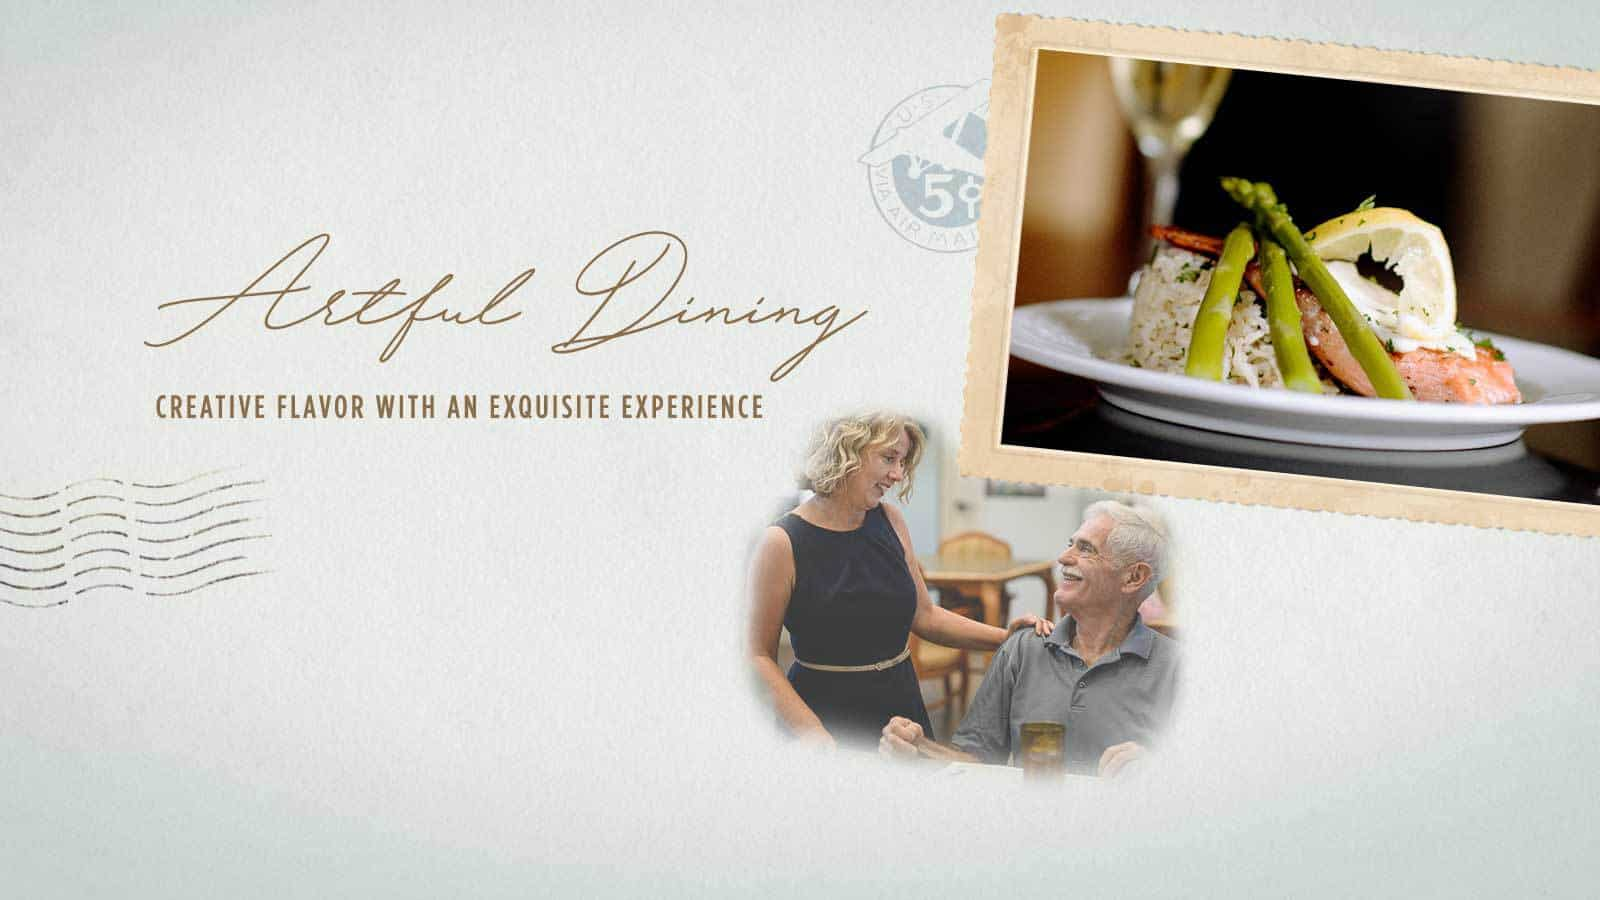 Artful Dining: Creative Flavor with an Exquisite Experience